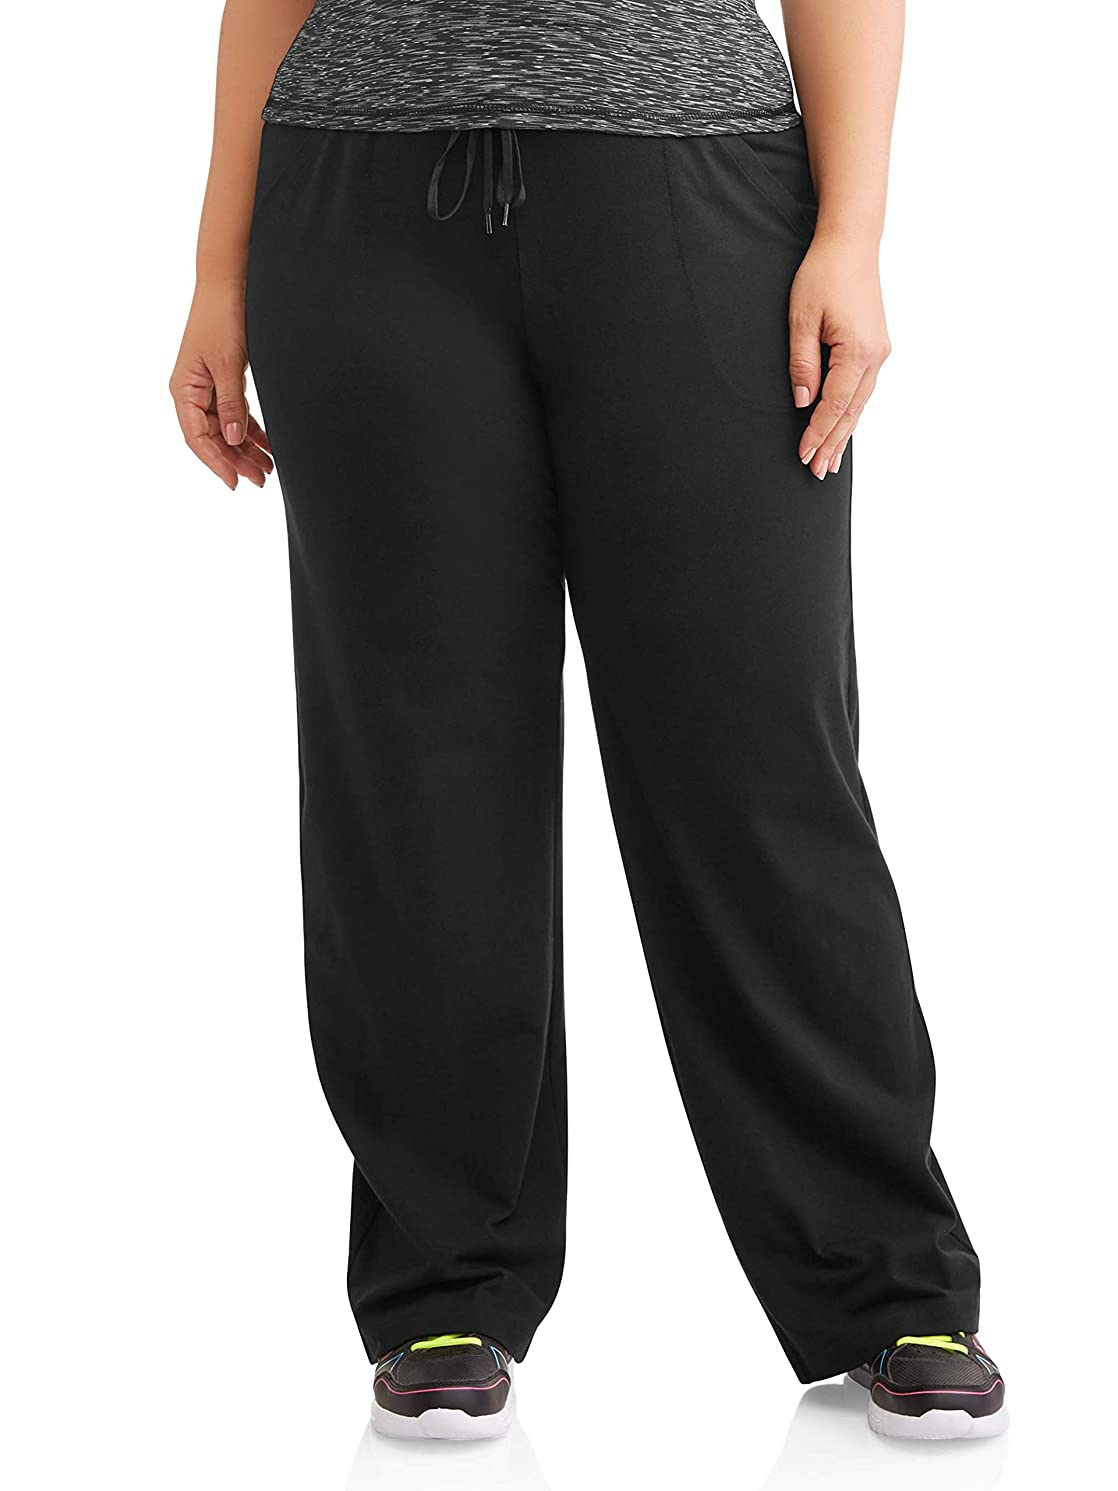 Athletic Works Women's Plus-Size Dri-More Core Relaxed Fit Workout Pant